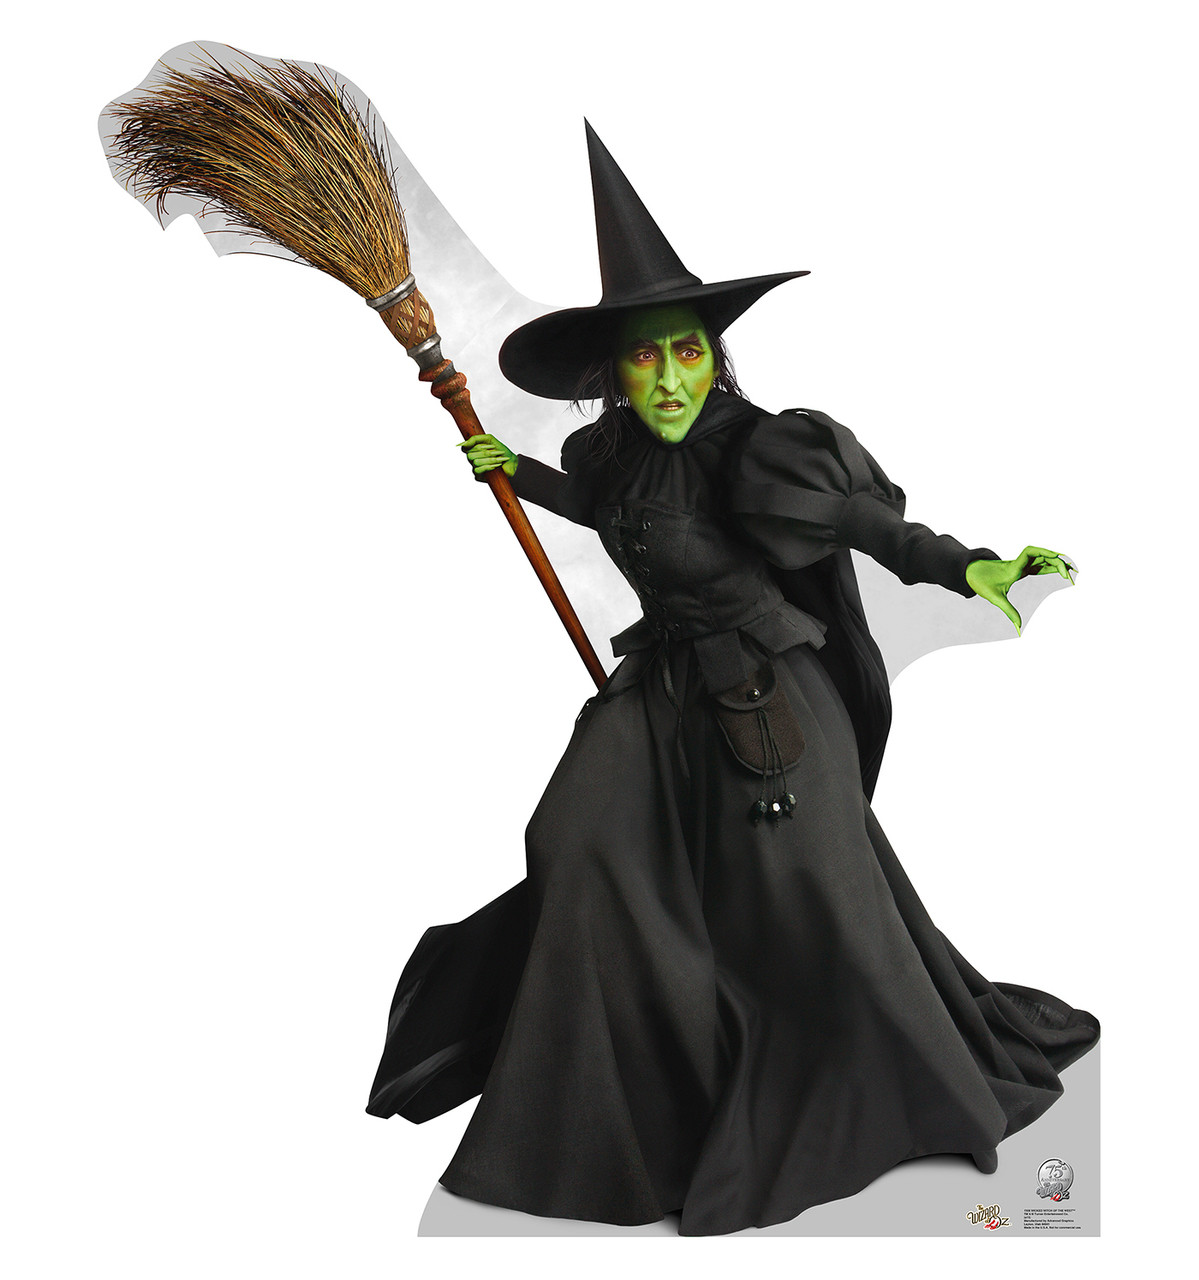 Life-size Wicked Witch of the West - Wizard of Oz 75th Anniversary Cardboard Standup